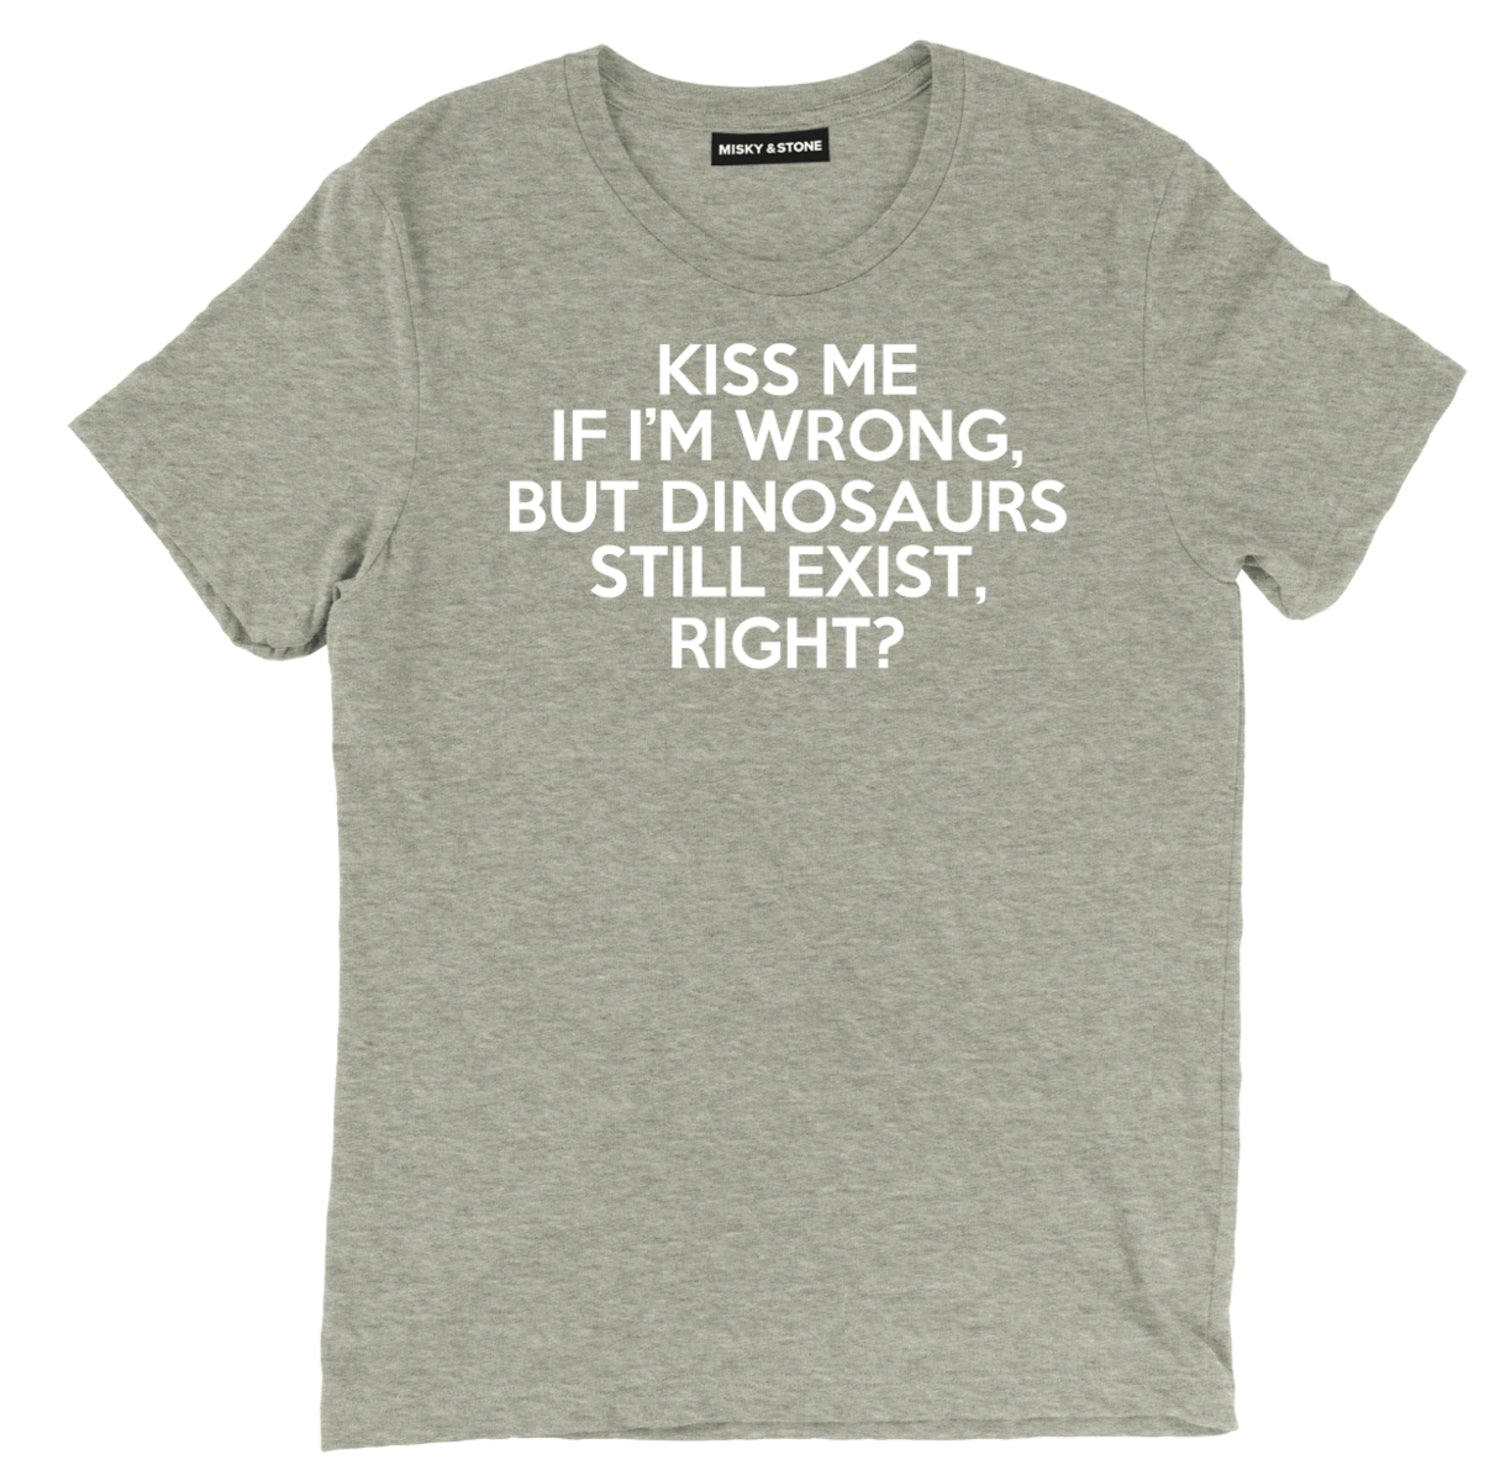 kiss me if im wrong sarcastic t shirts, dinosaurs still exist right sarcastic shirts, sarcastic tee shirts, sarcastic tees, pick up line sarcastic t shirt sayings, sarcastic t shirts quotes, funny sarcastic t shirts,